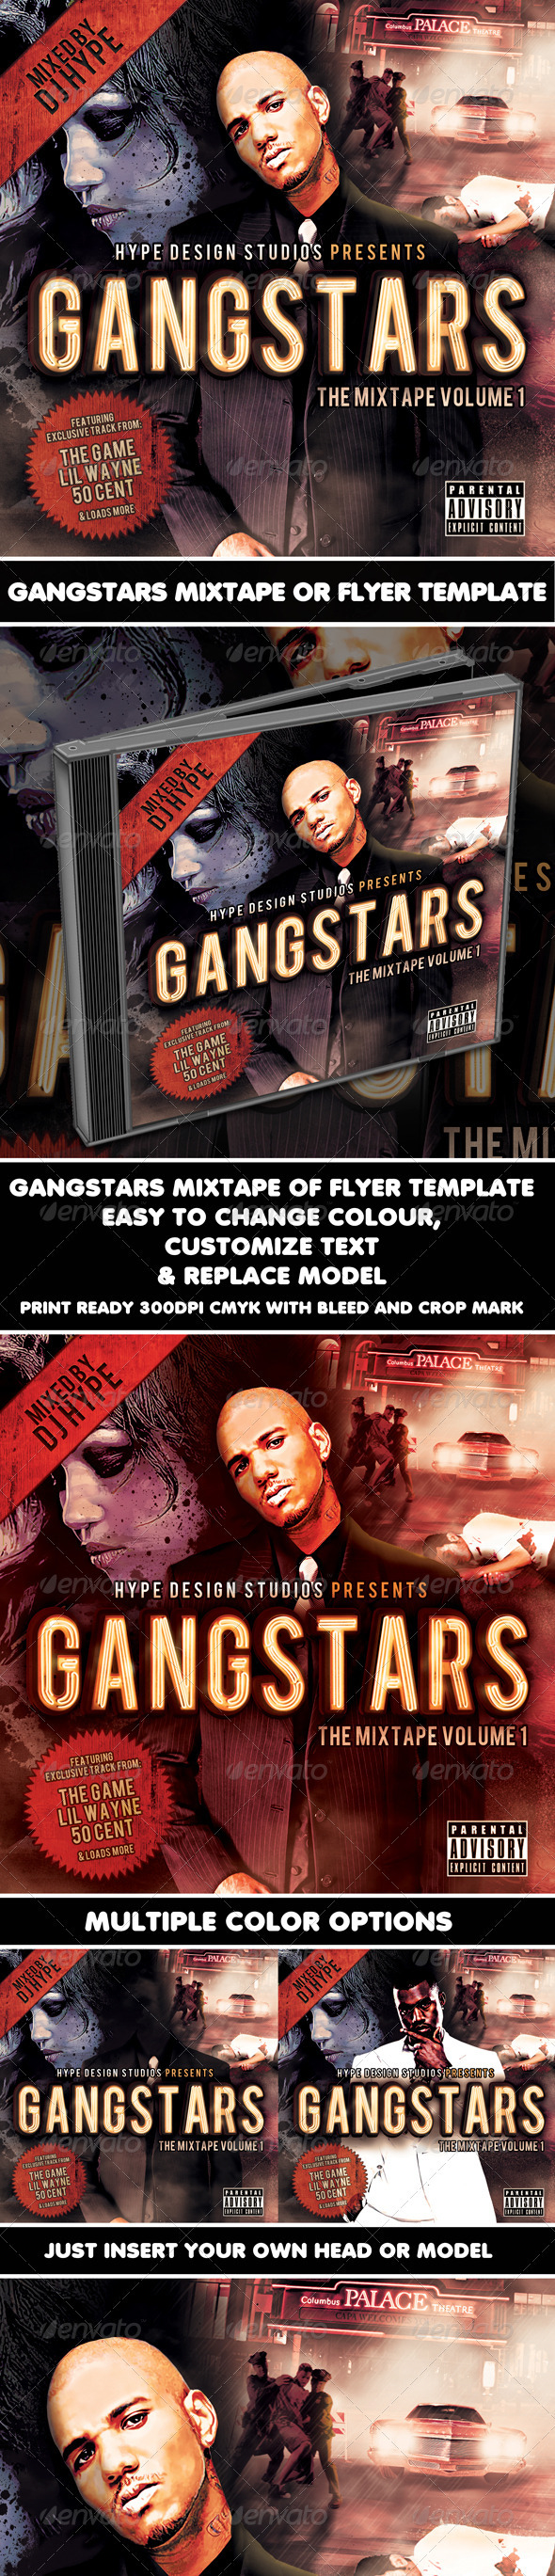 GraphicRiver Gangstars Mixtape or Flyer Template 956936